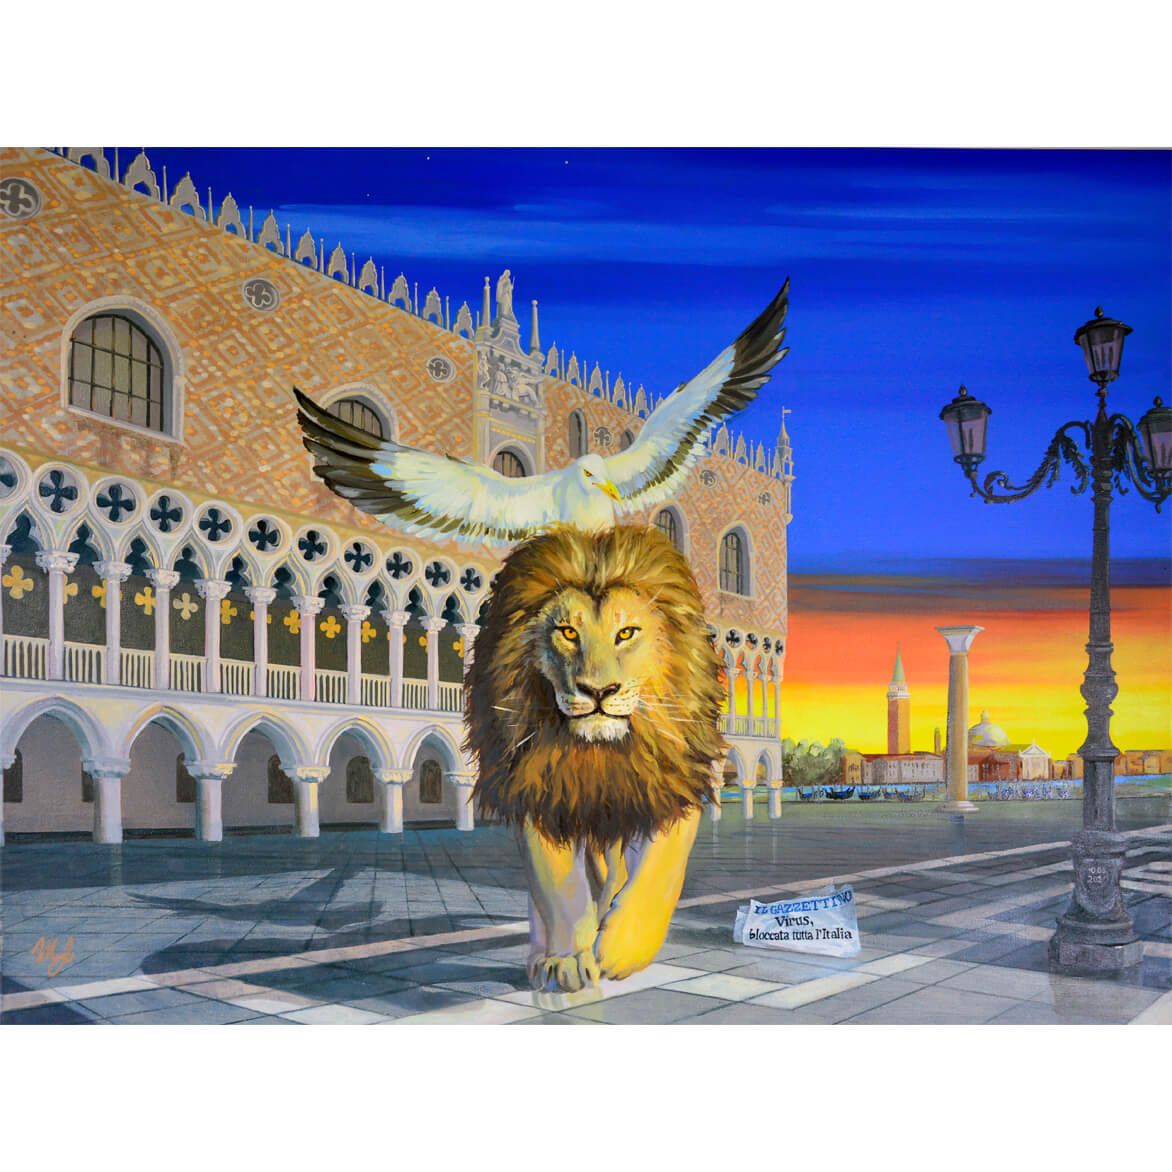 Lion of Venice with Doge Palace in background